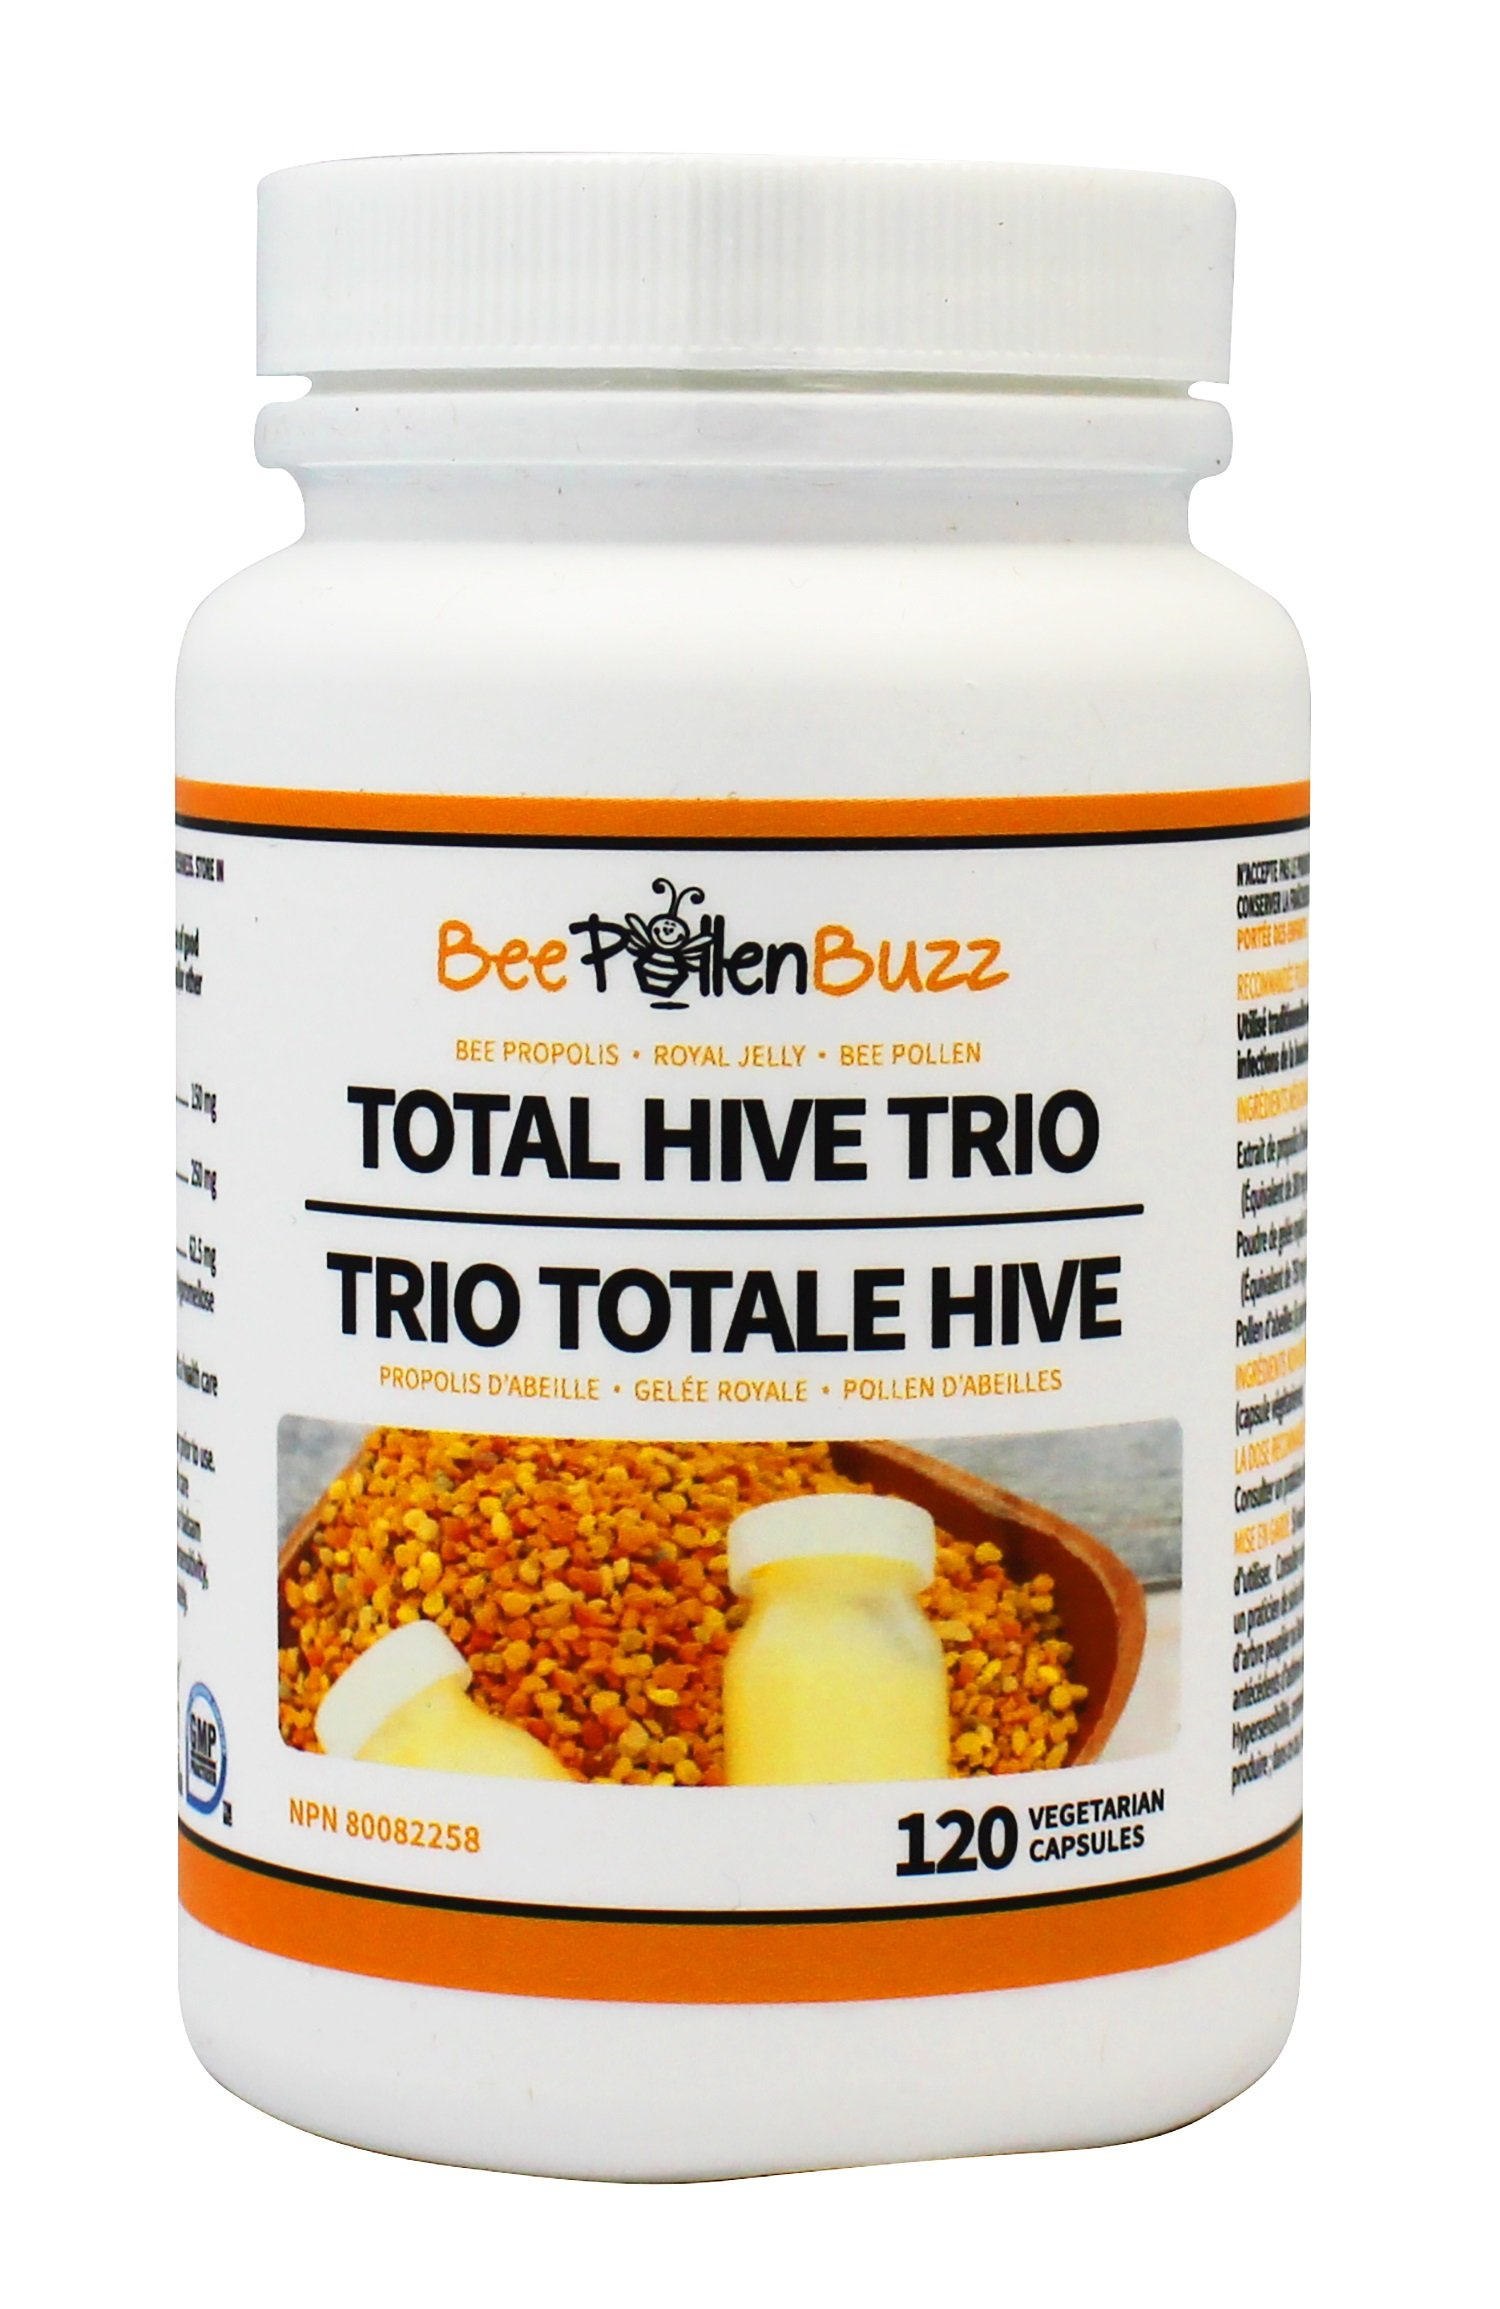 Total Hive Trio 120 caps - Royal Jelly, Propolis and Bee Pollen in 1 capsule